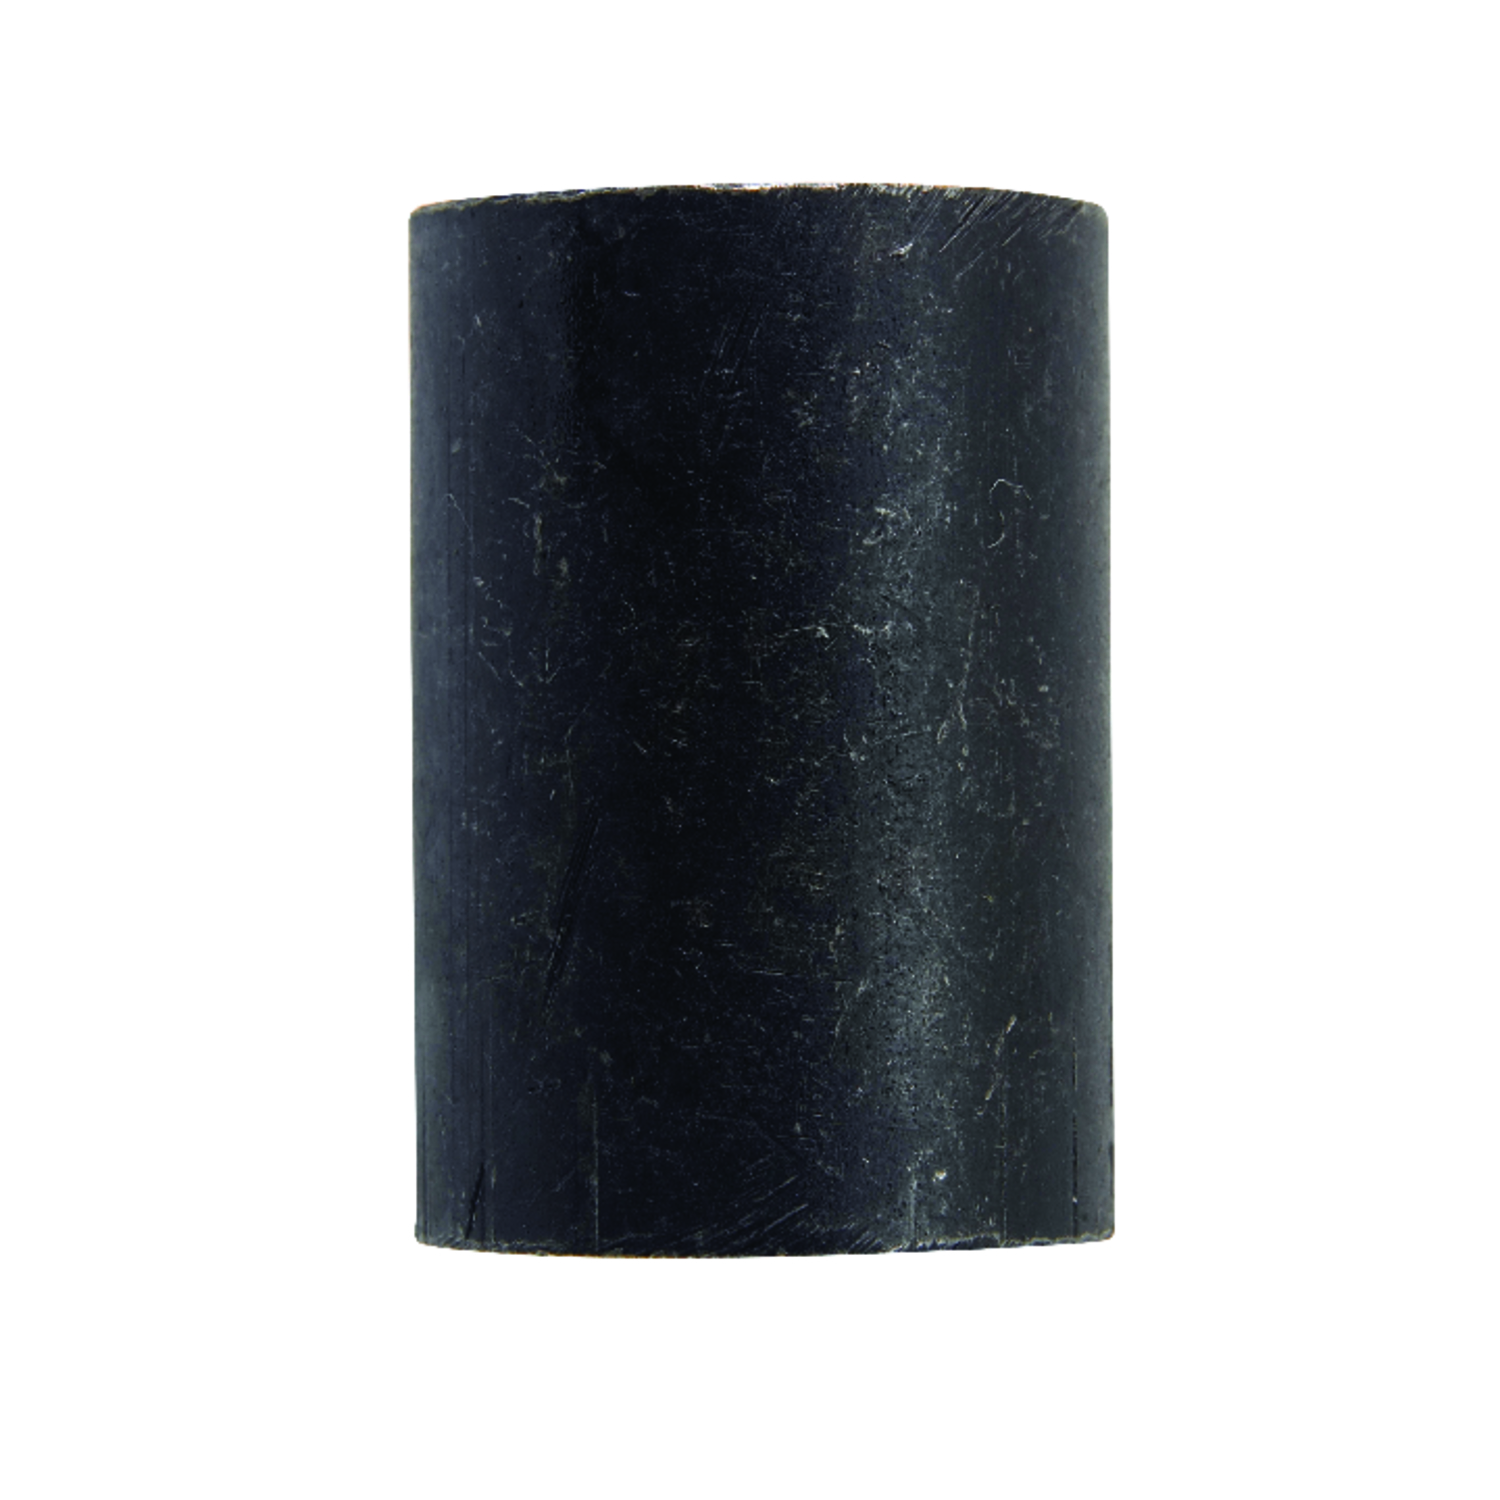 Ace  1-1/4 in. FPT   x 1-1/4 in. Dia. FPT  Black  Malleable Iron  Coupling